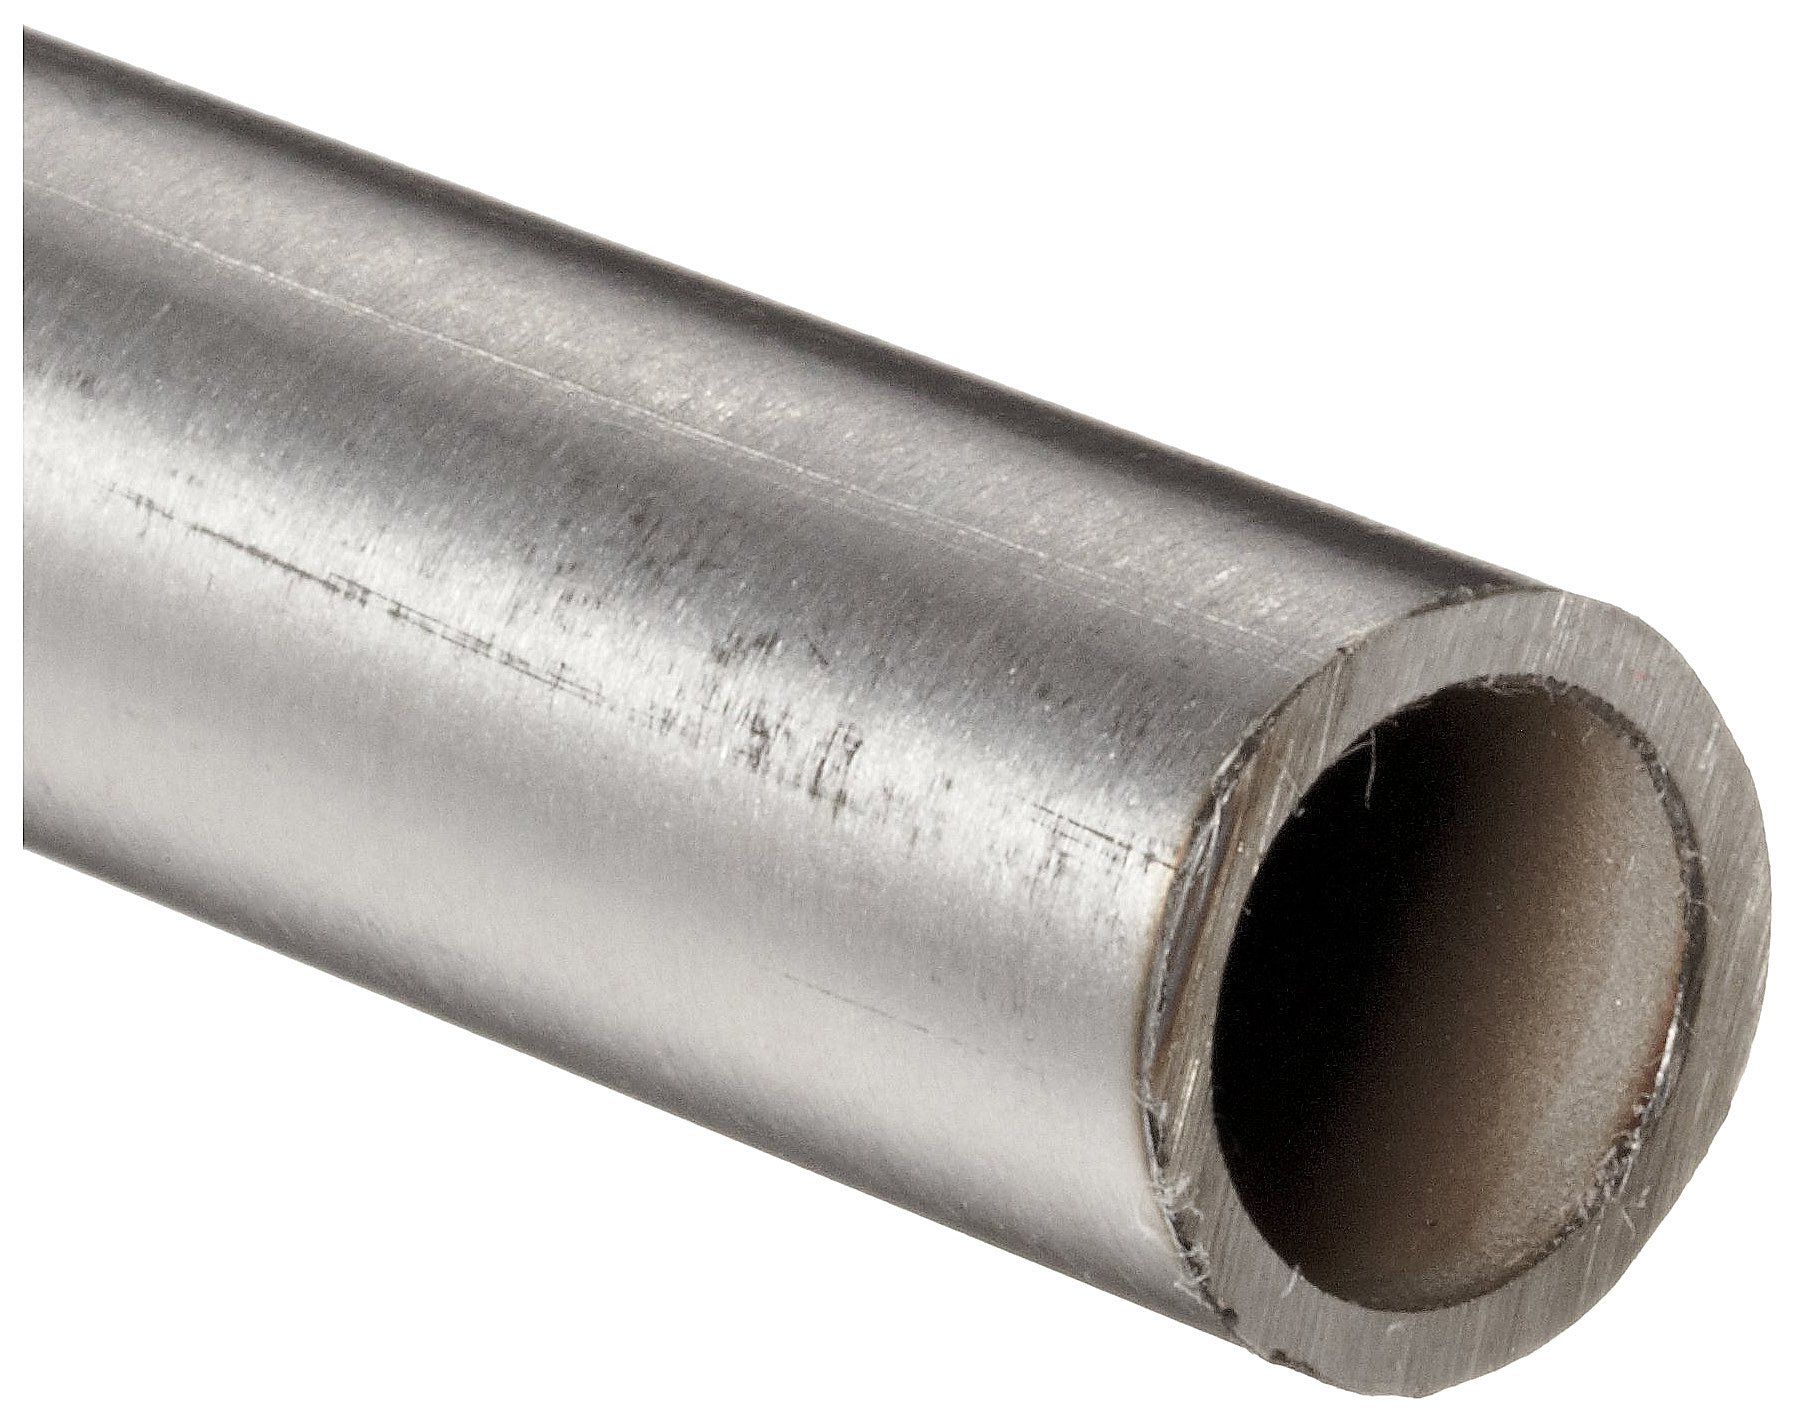 Stainless Steel 304L Seamless Round Tubing, 3/8'' OD, 0.305'' ID, 0.035'' Wall, 36'' Length